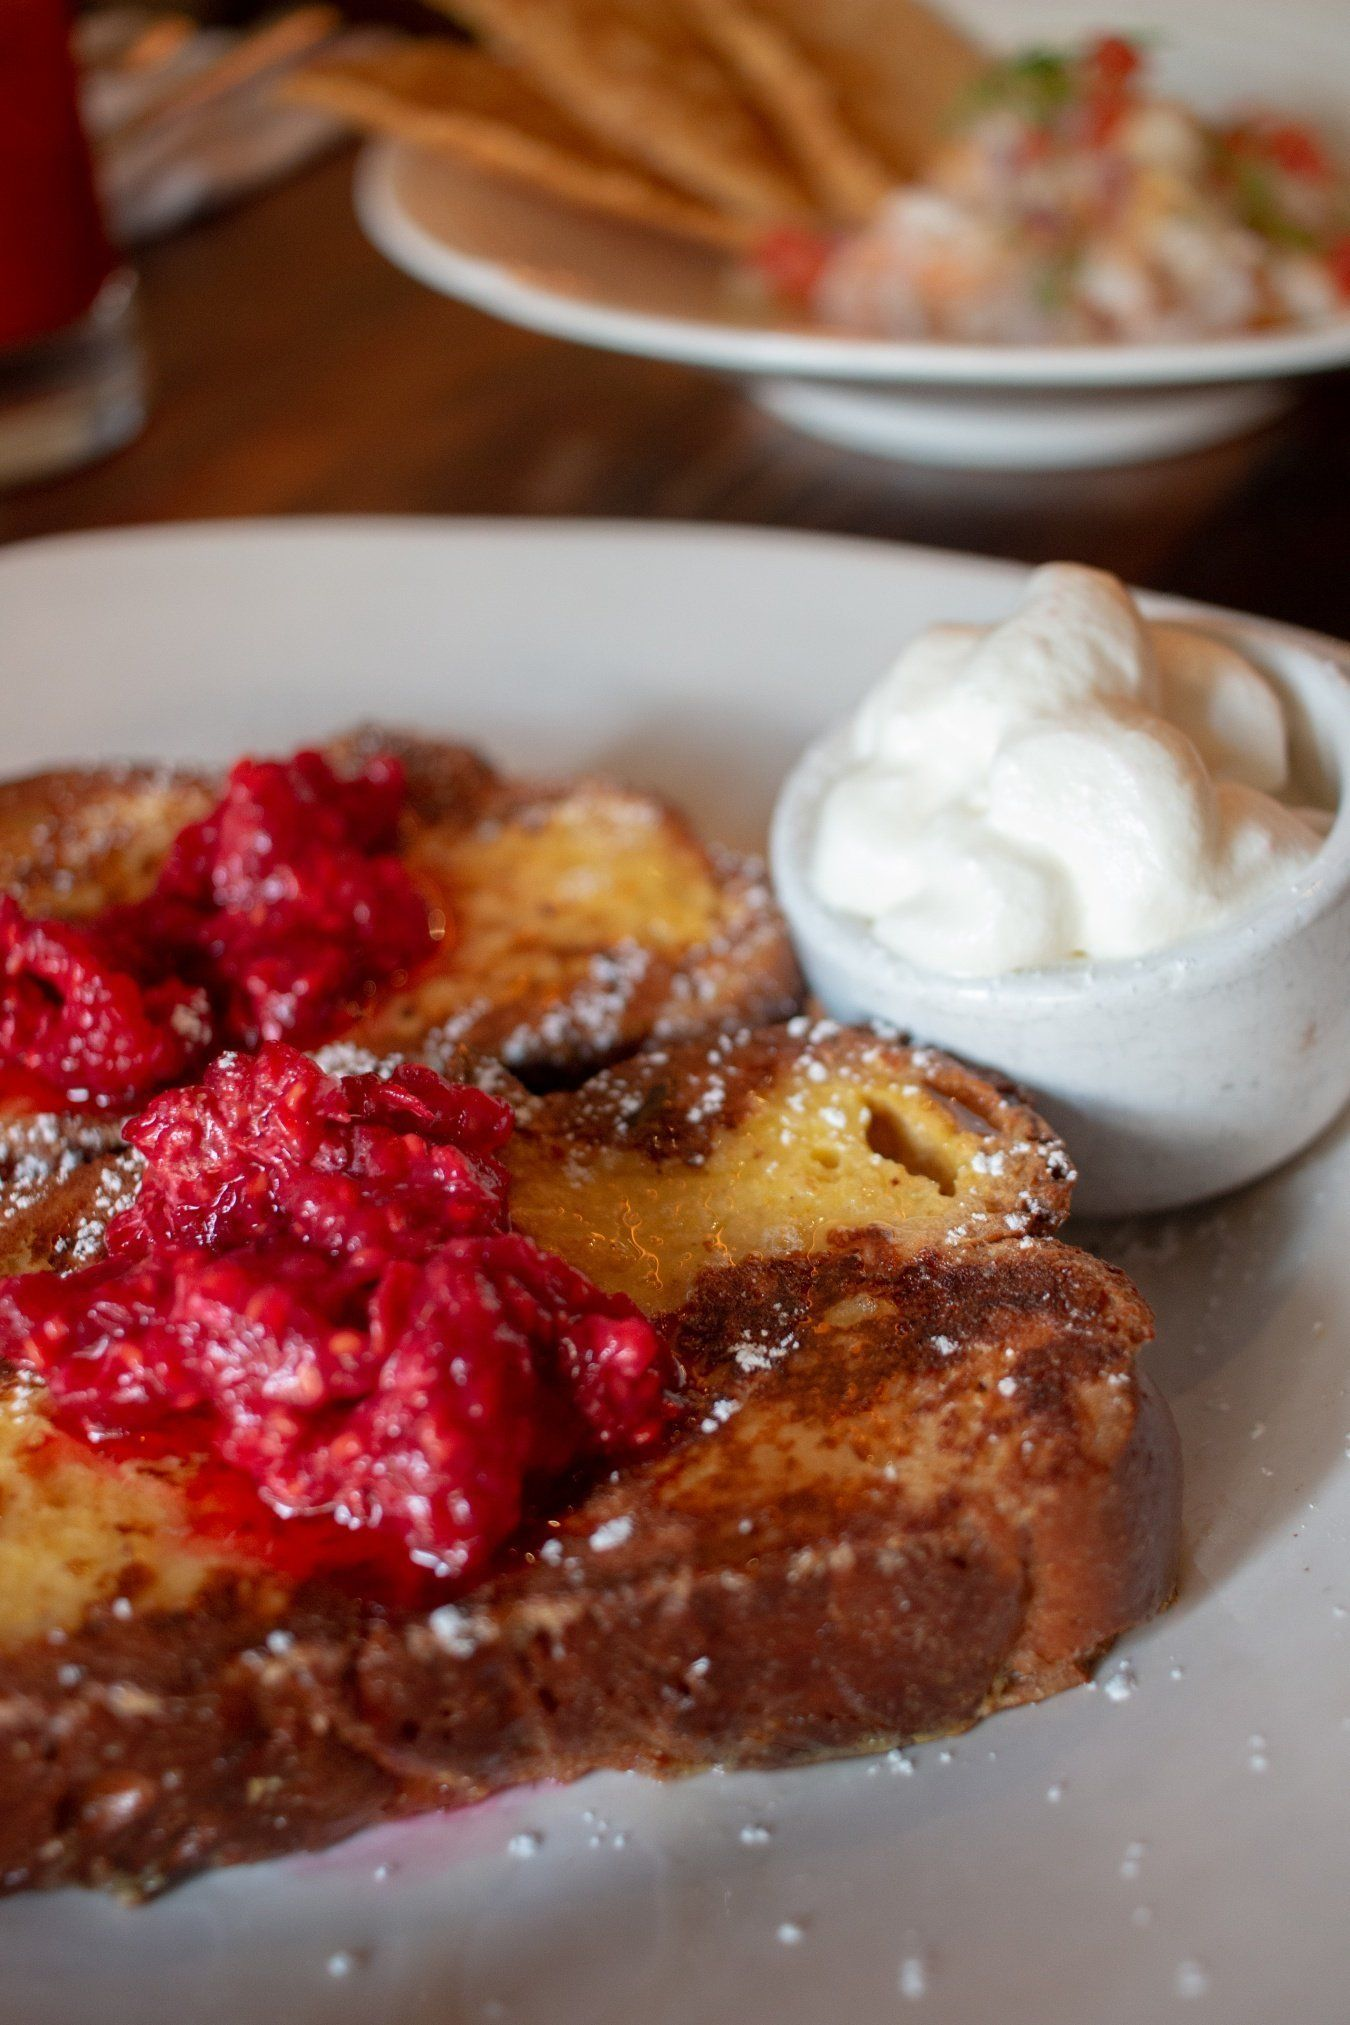 This was some of the best french toast in San Francisco in